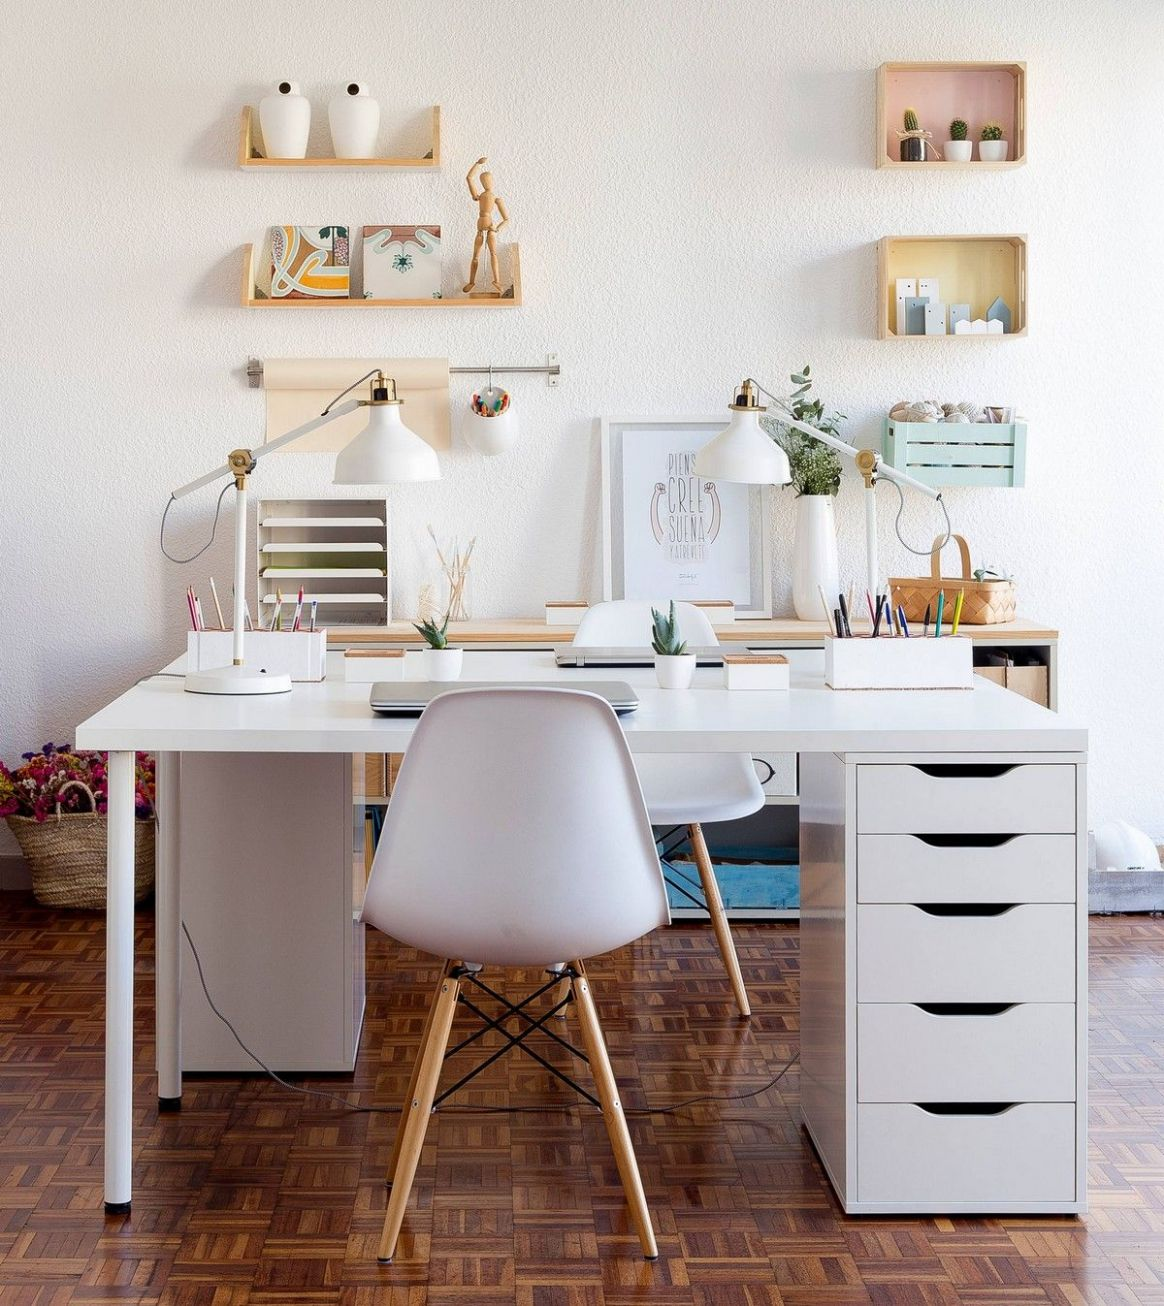 12 Inspiring Home Office Decorating Ideas (With images ...